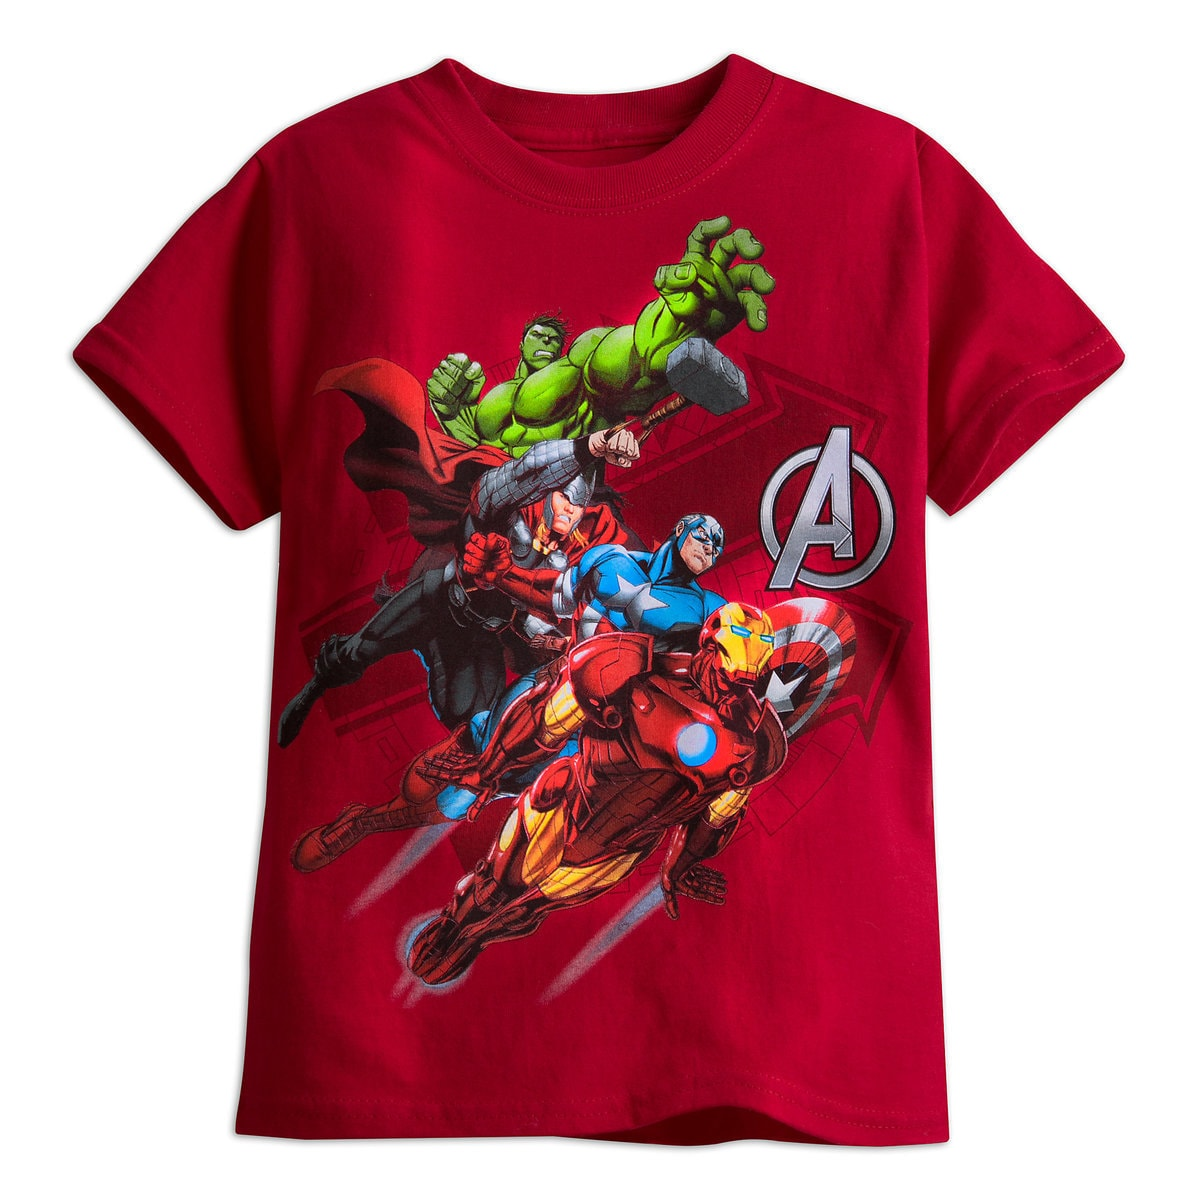 fcc3d855 Product Image of The Avengers Tee for Kids # 1